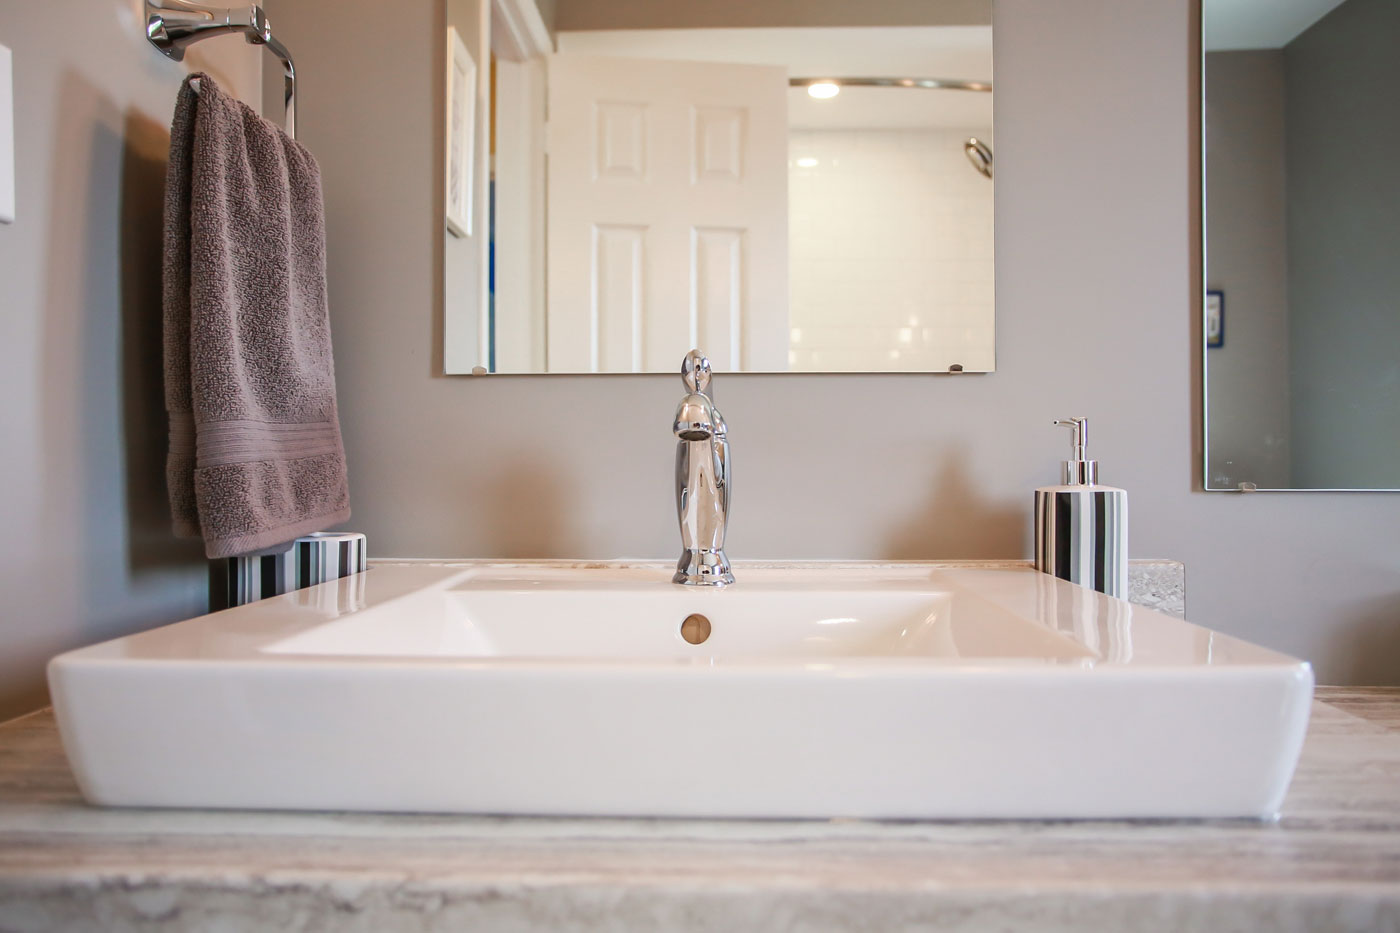 Taylorwood bath reno total living concepts for Shower reno